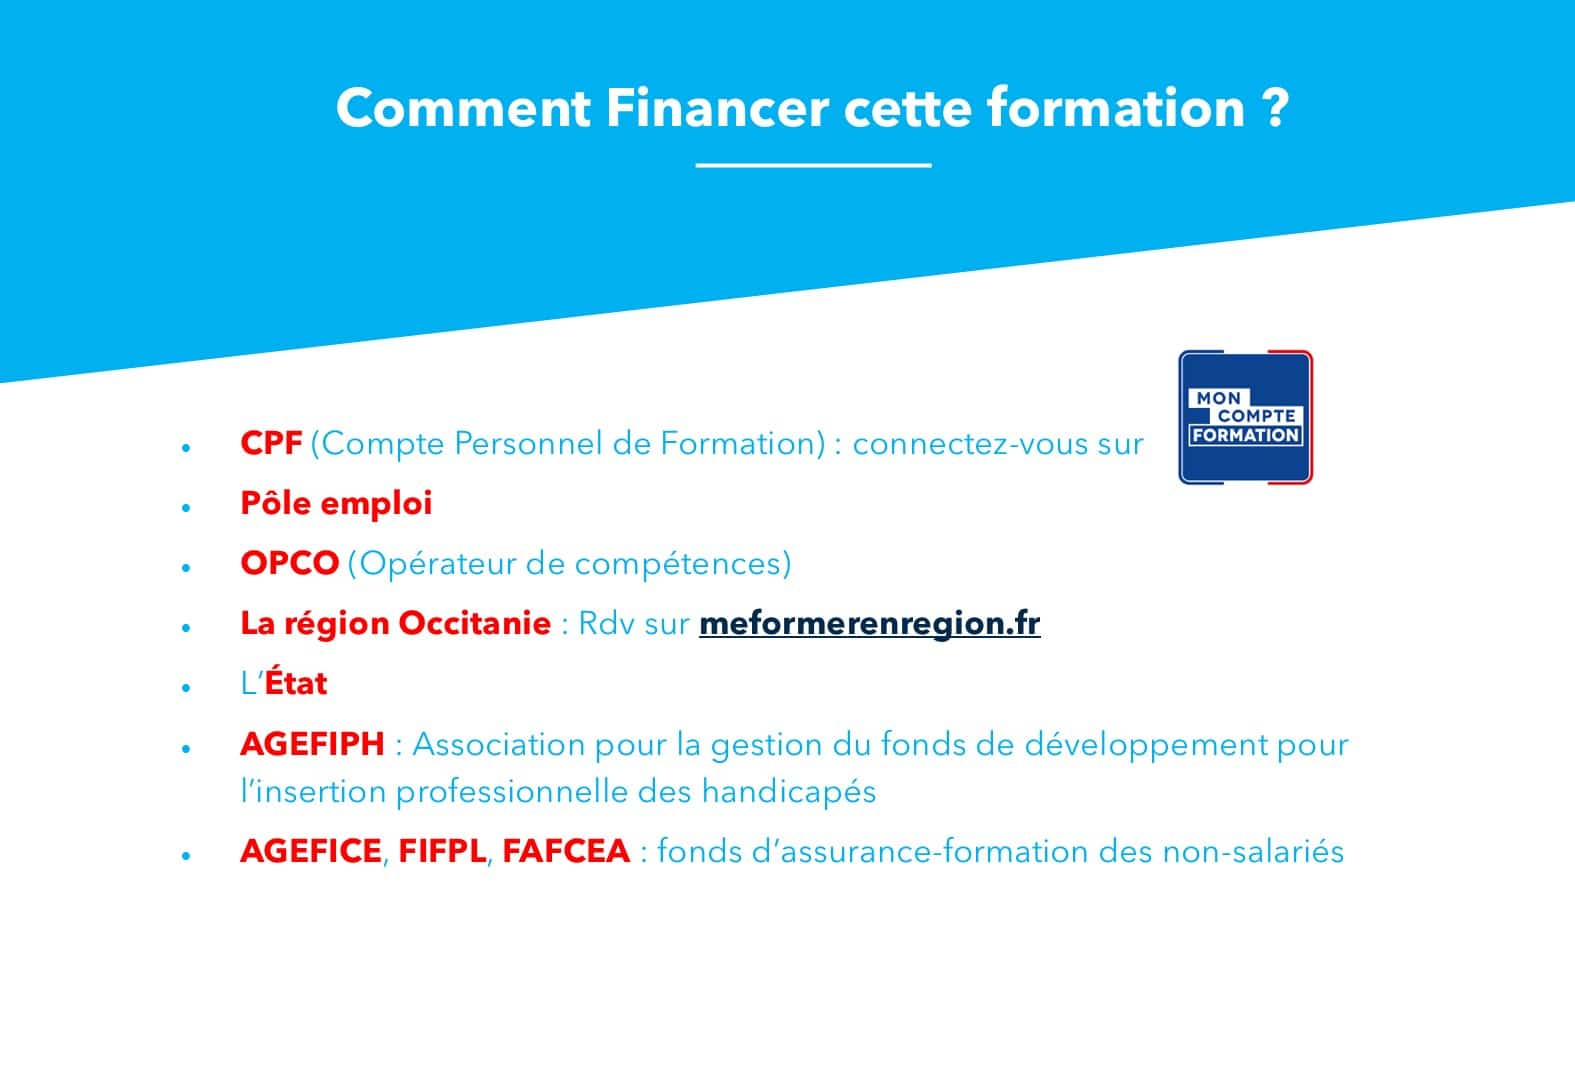 AT FORMATION - COMMENT FINANCER UNE FORMATION